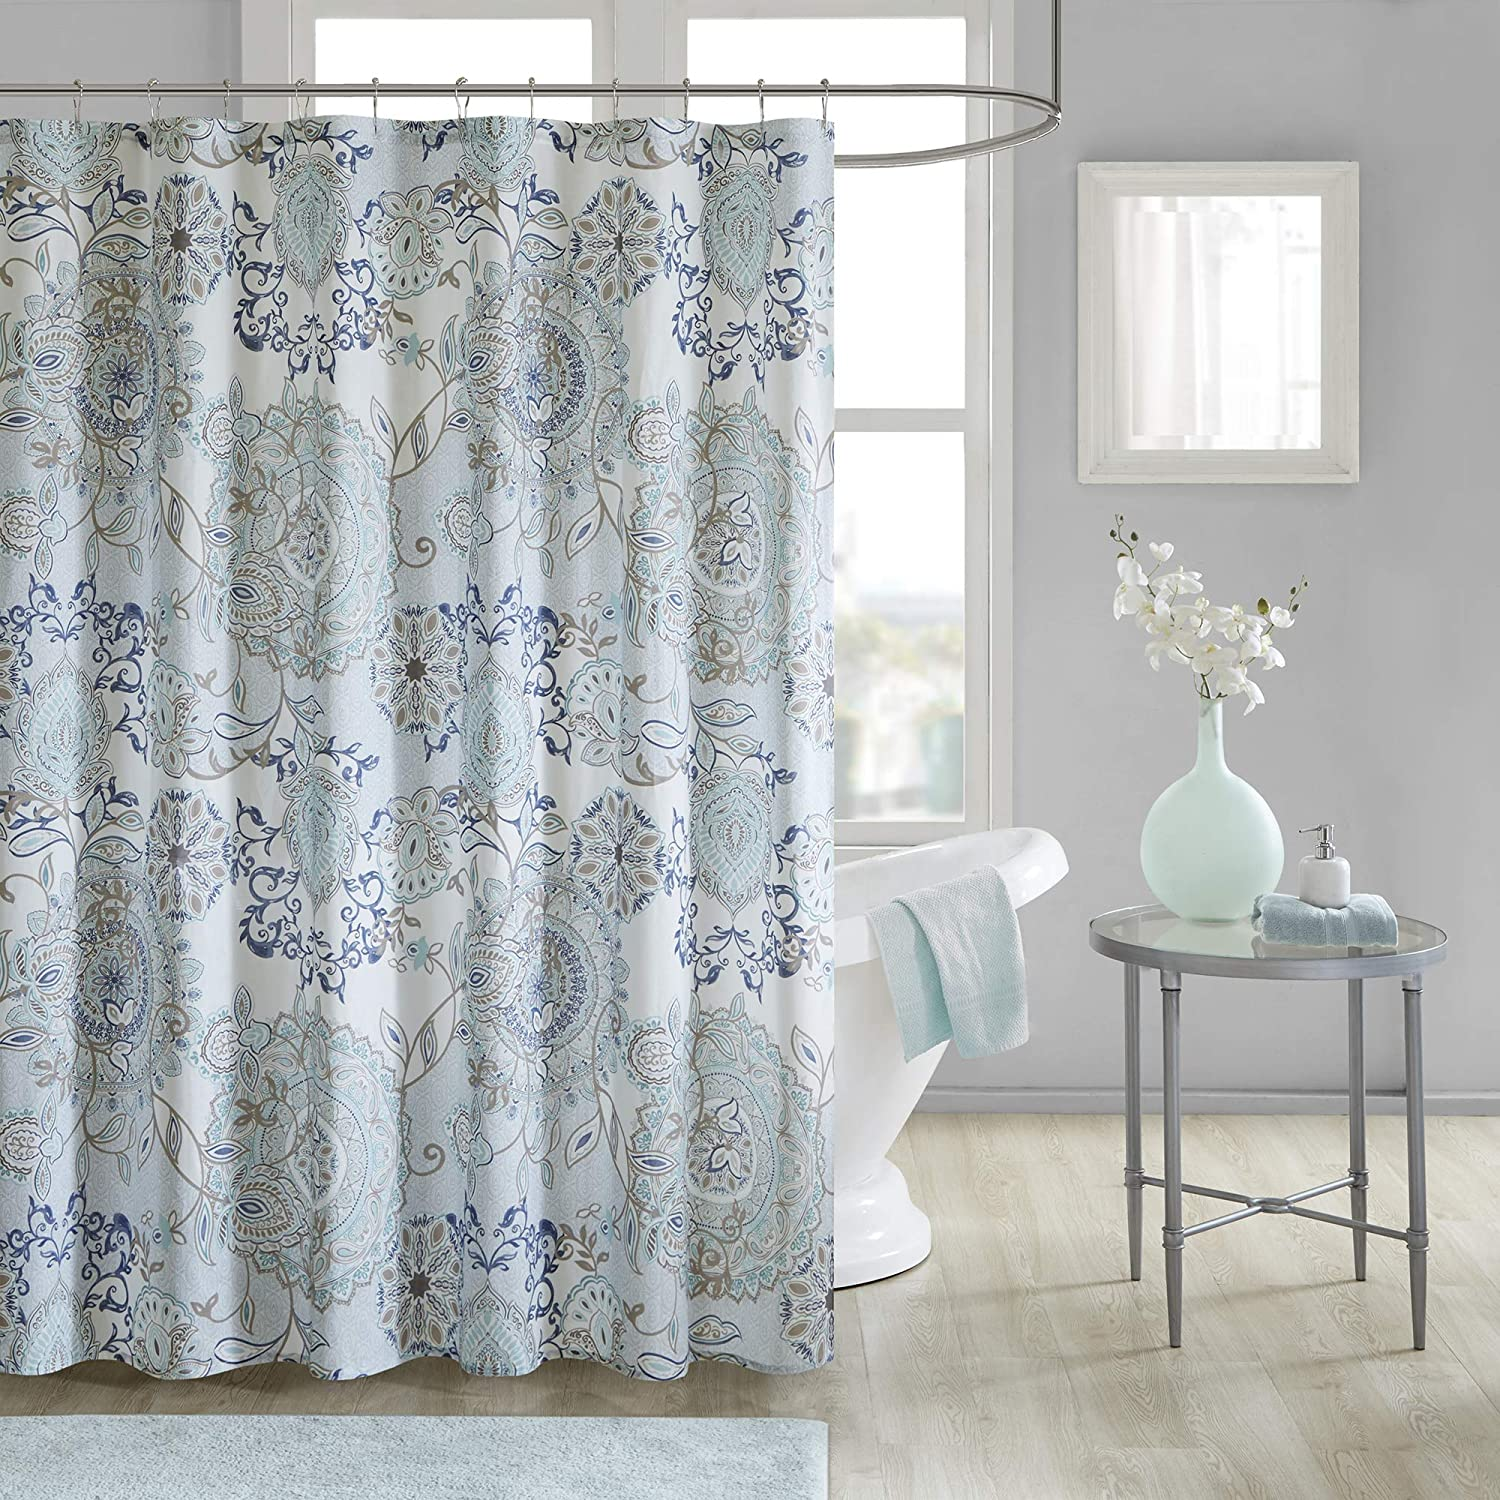 Madison Park Isla 100% Cotton Percale Floral Medallion Boho Printed Watercolor Cute Bathroom Shower Curtain, 72X72 Inches, Blue